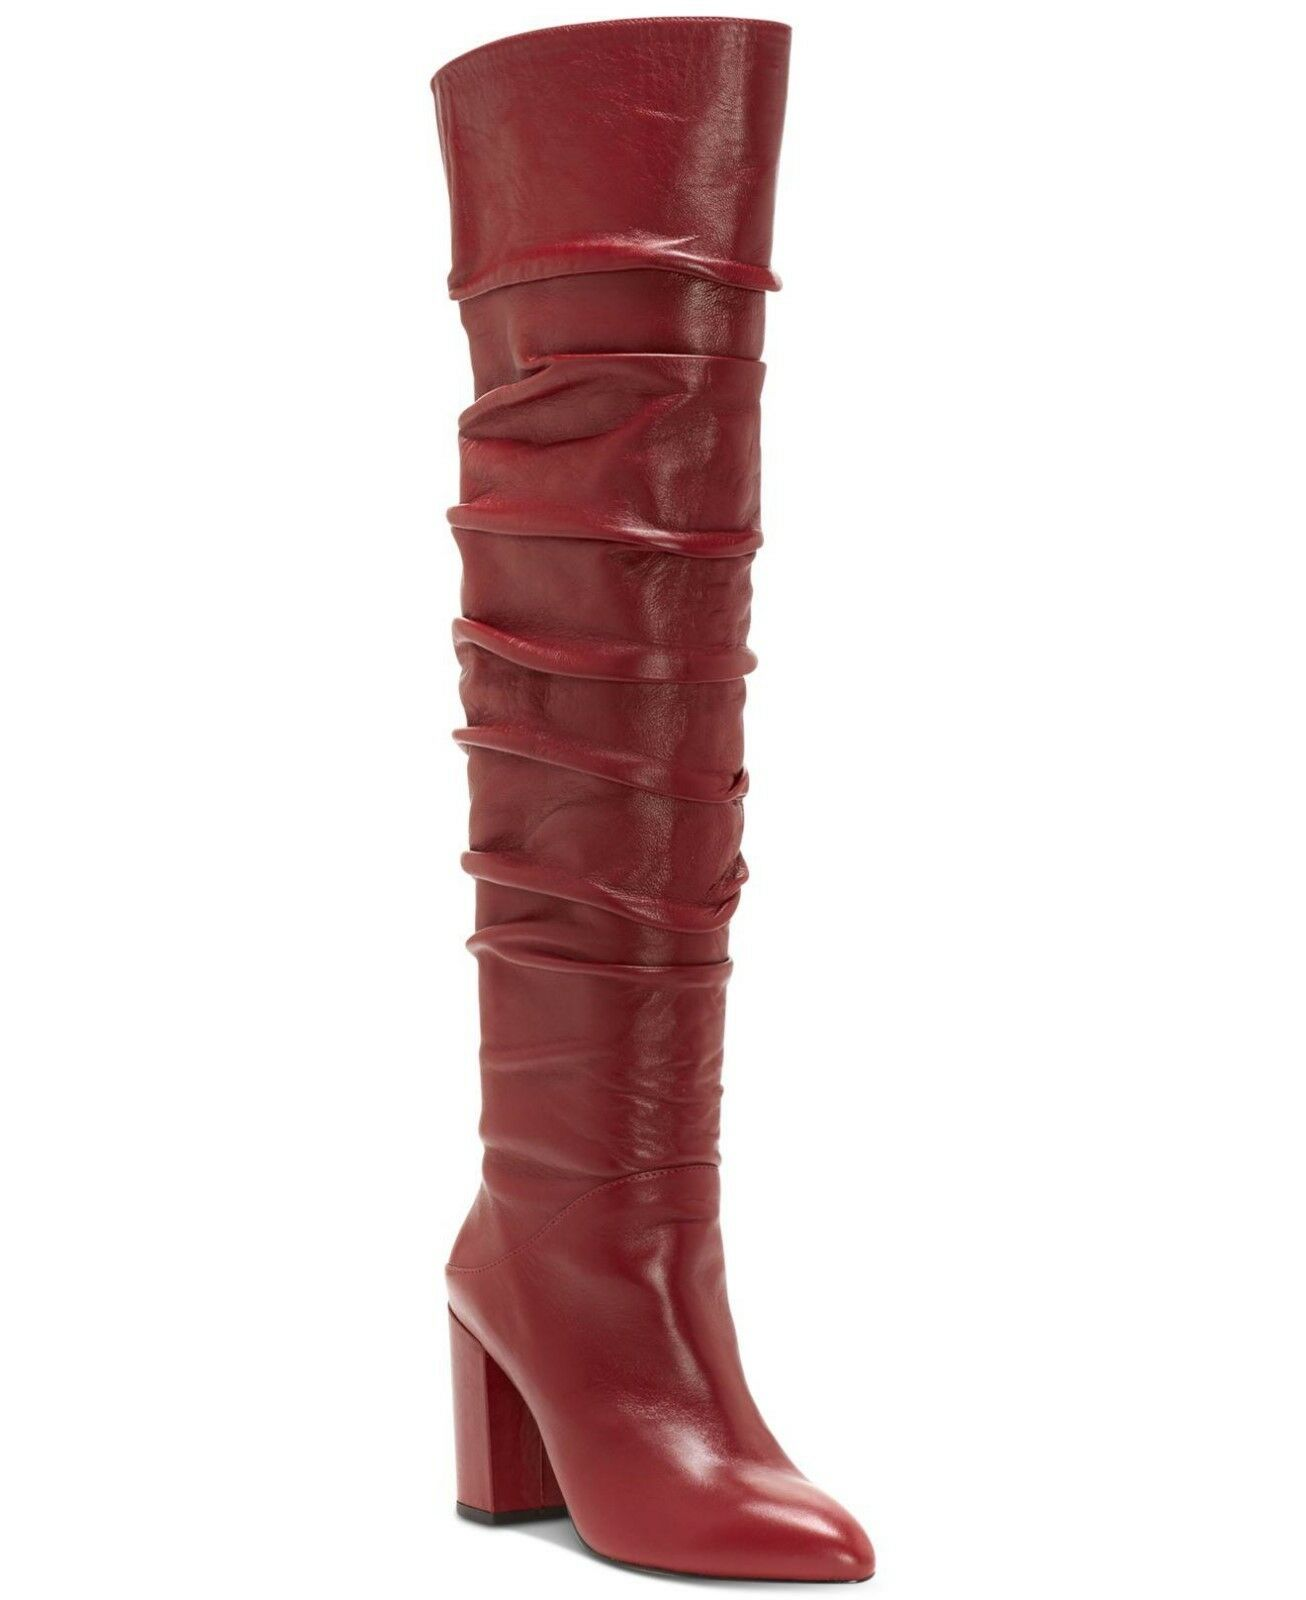 INC International Concepts Tabithaa Over-The-Knee Leather Boots Merlot Size 7.5